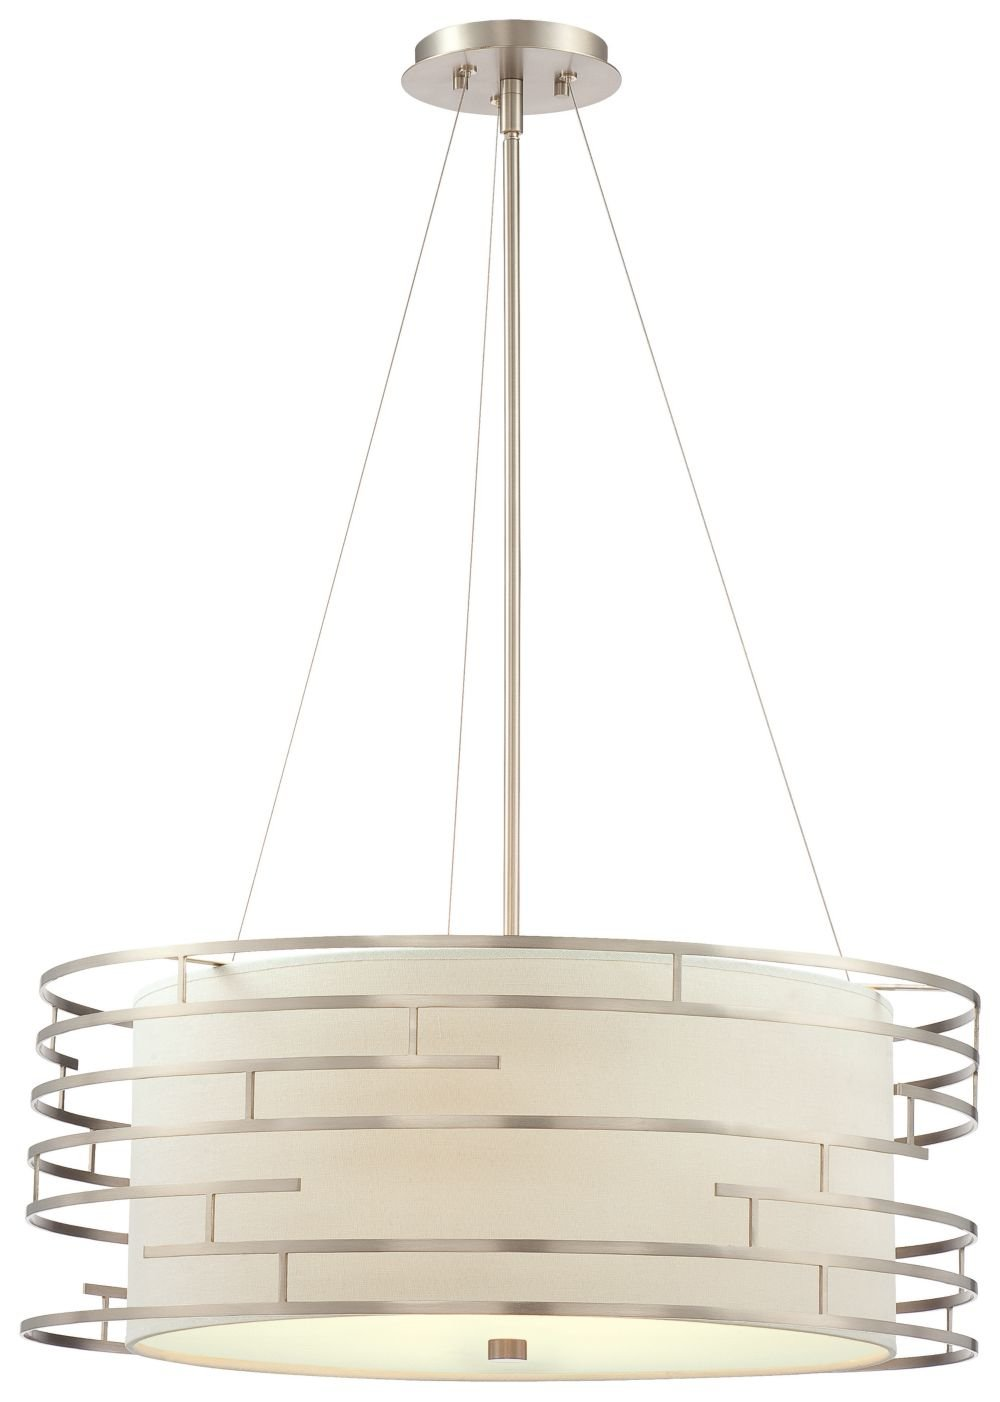 Philips forecast 190215836 labyrinth pendant satin nickel ceiling philips forecast 190215836 labyrinth pendant satin nickel ceiling pendant fixtures amazon aloadofball Images